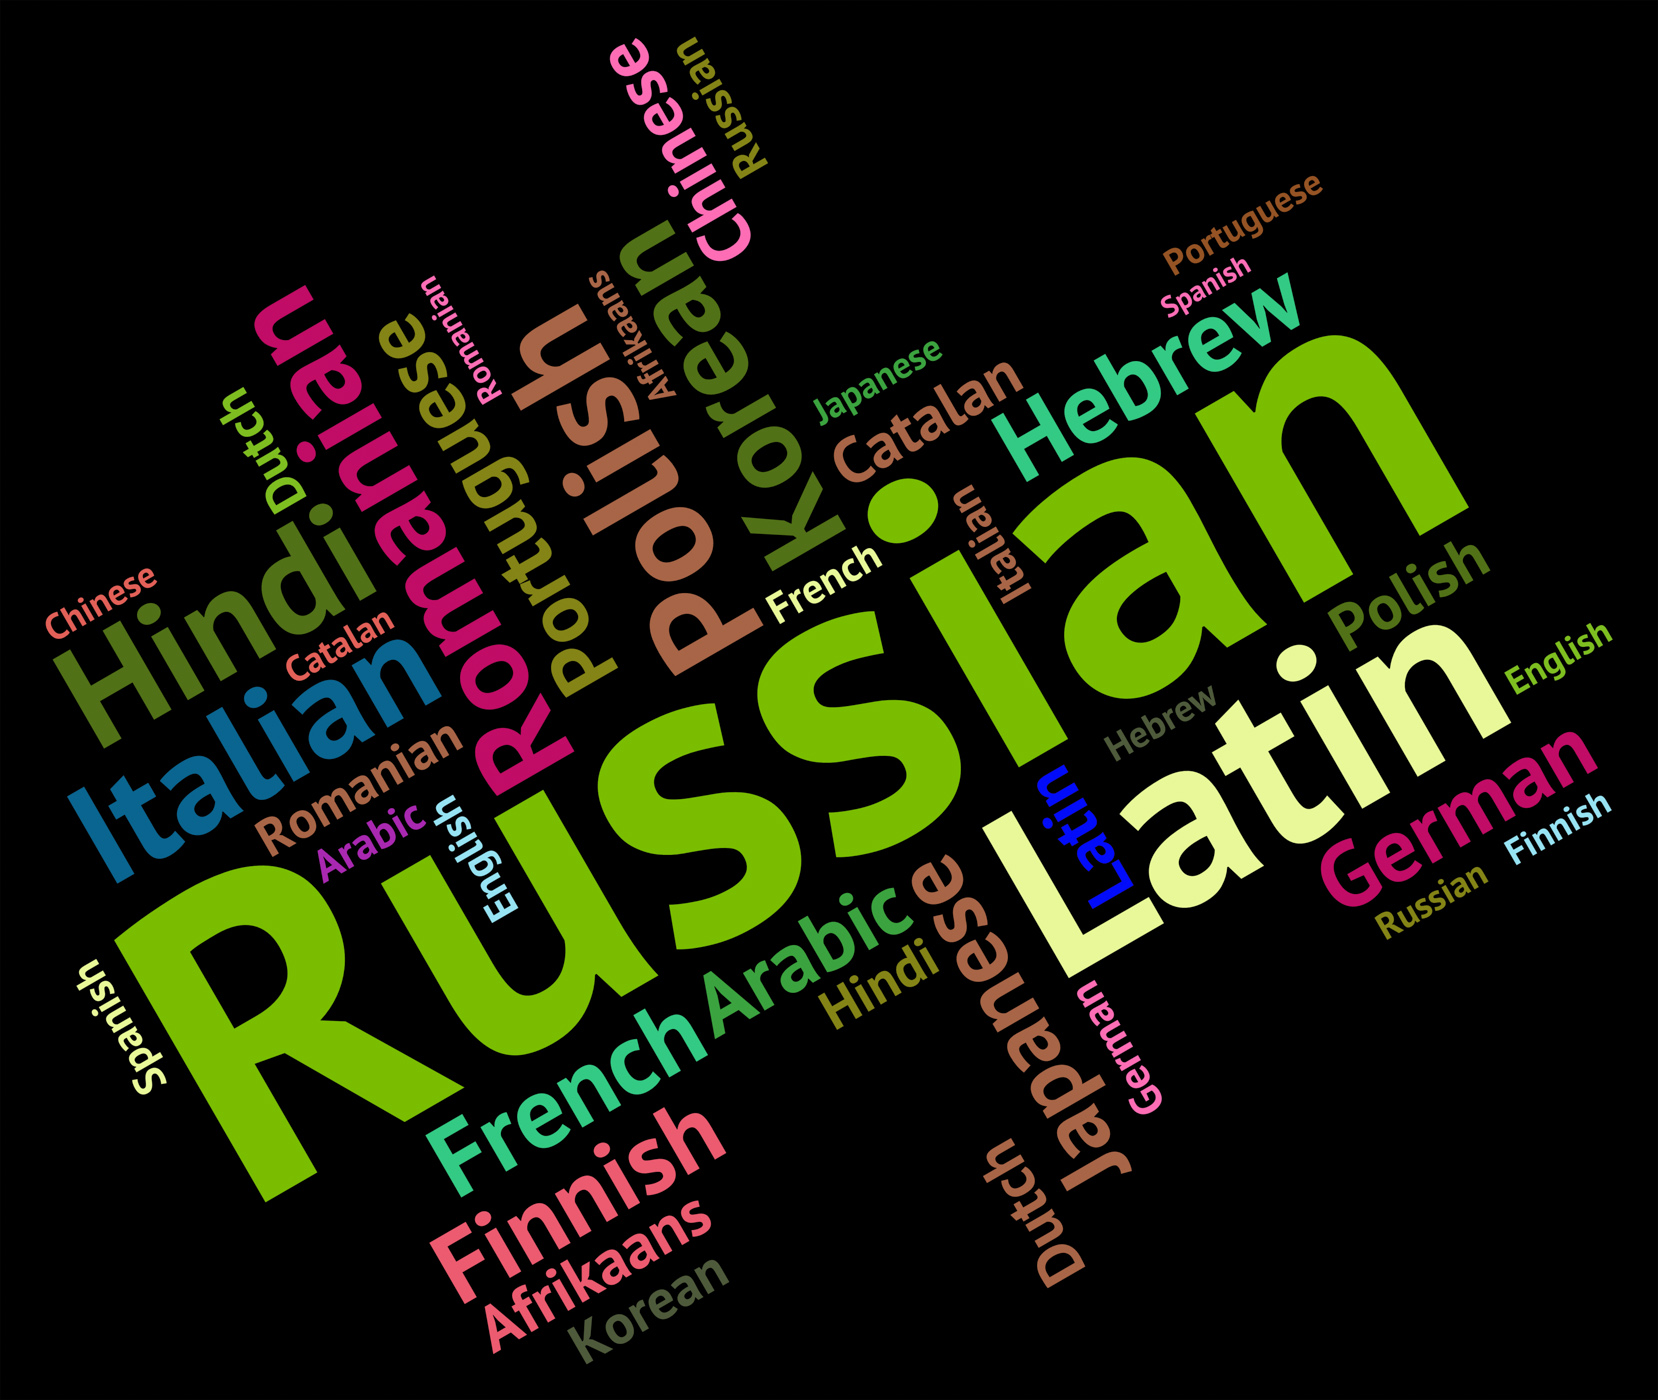 Russian language means foreign wordcloud and text photo